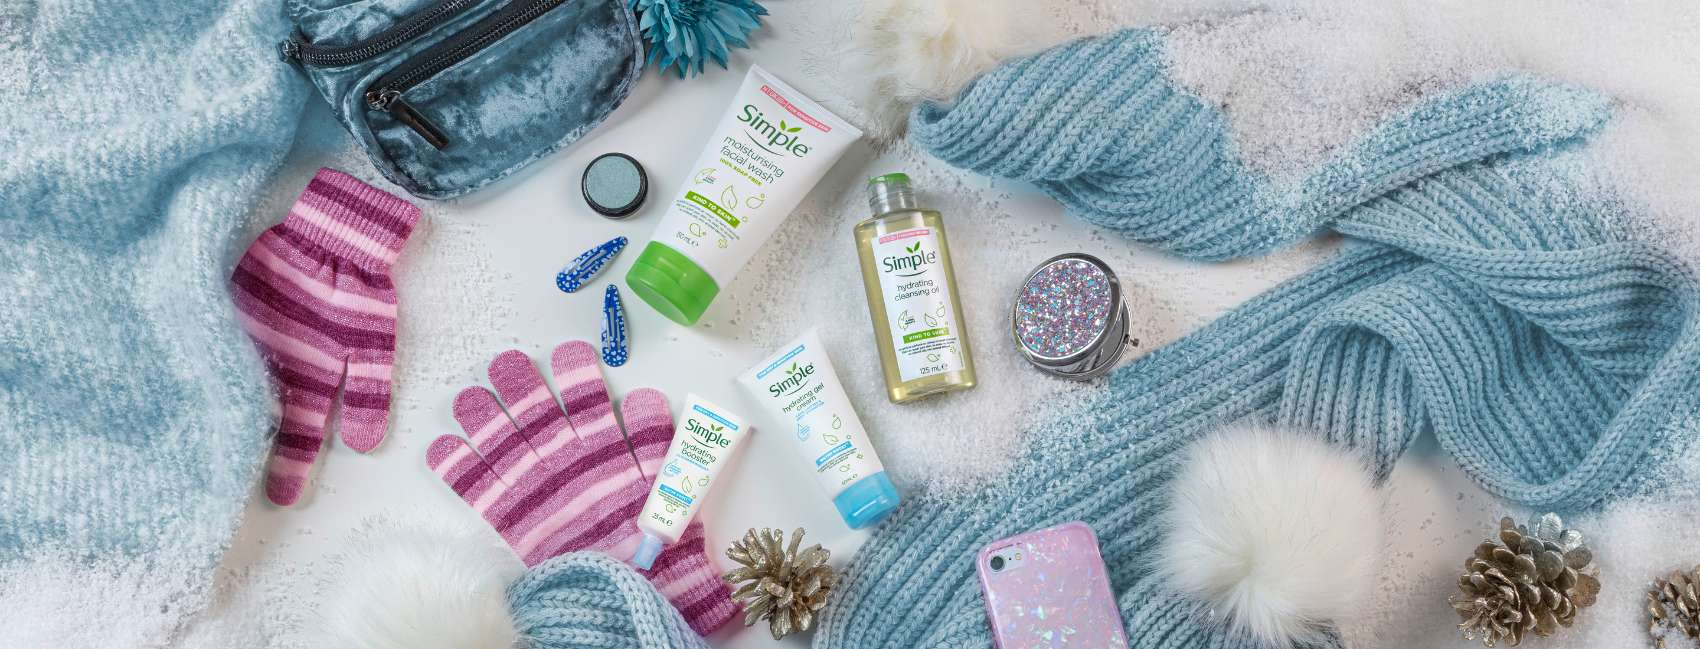 Flat lay of Simple skincare products on a fluffy white background with a beanie and gloves